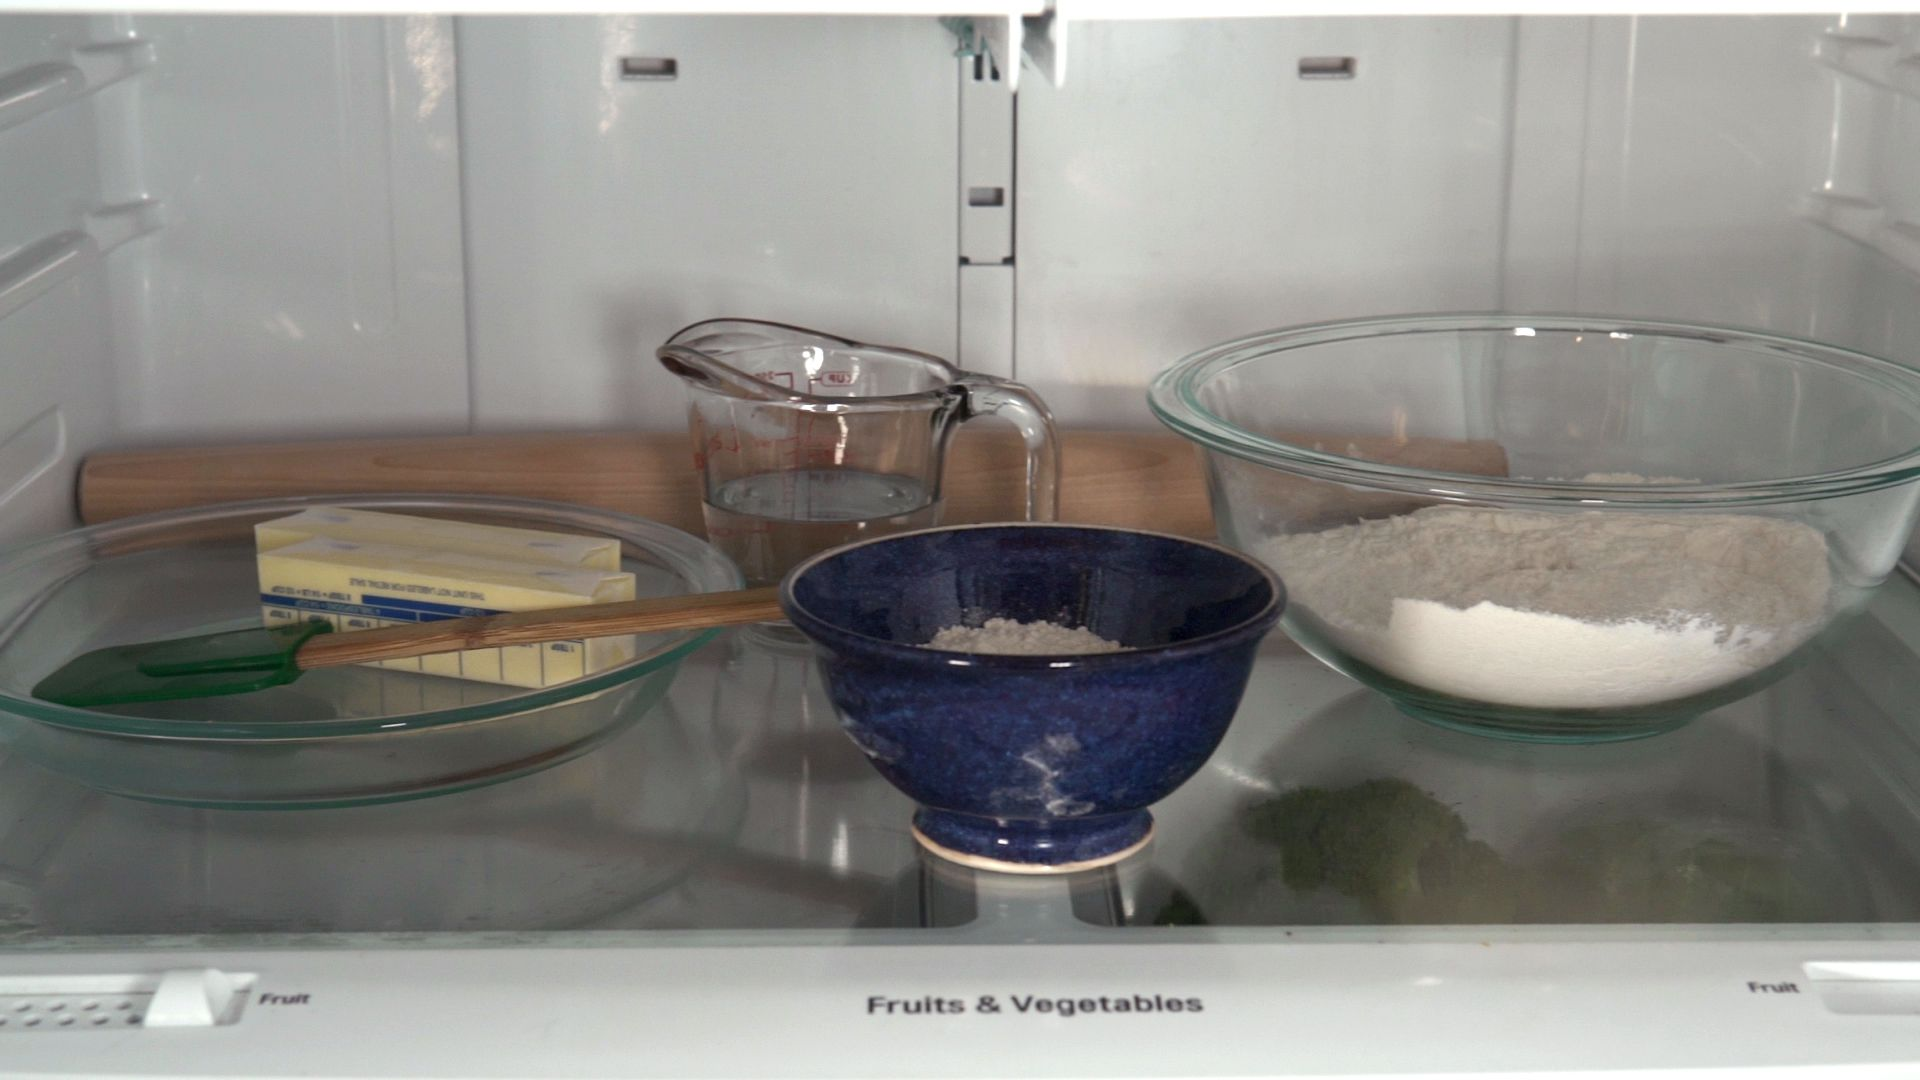 Refrigerator shelf with a glass pie dish holding a spatula and two sticks of butter, a glass measuring cup of water, a blue ceramic bowl, and a glass mixing bowl with flour